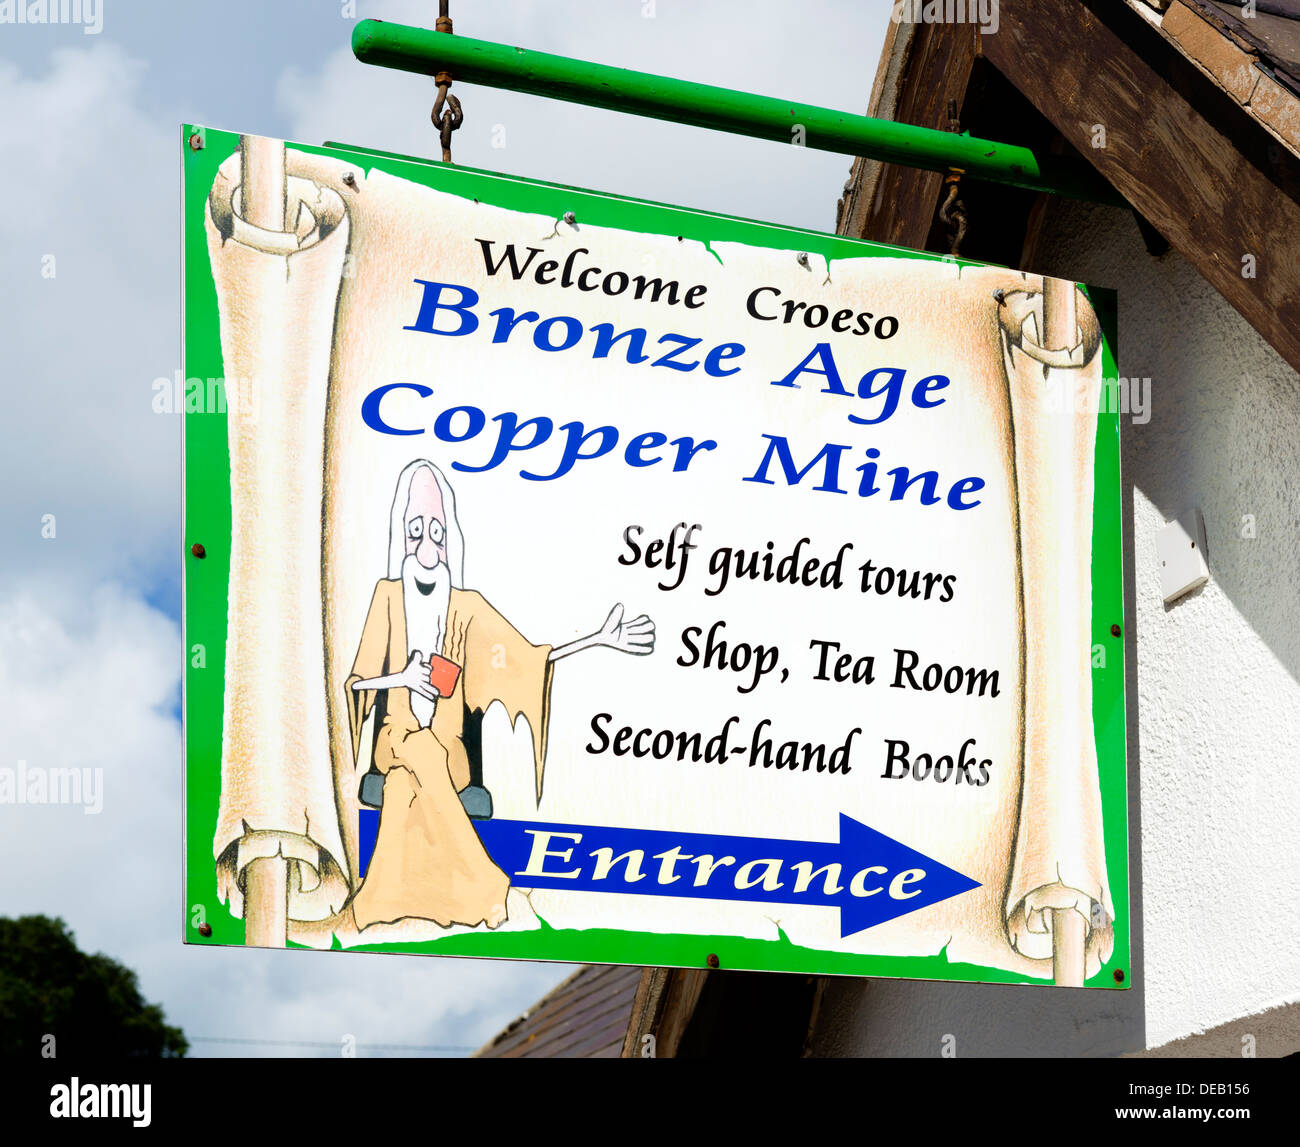 Entrance sign to Bronze Age Copper Mines, The Great Orme, Llandudno, Conwy, North Wales, UK - Stock Image